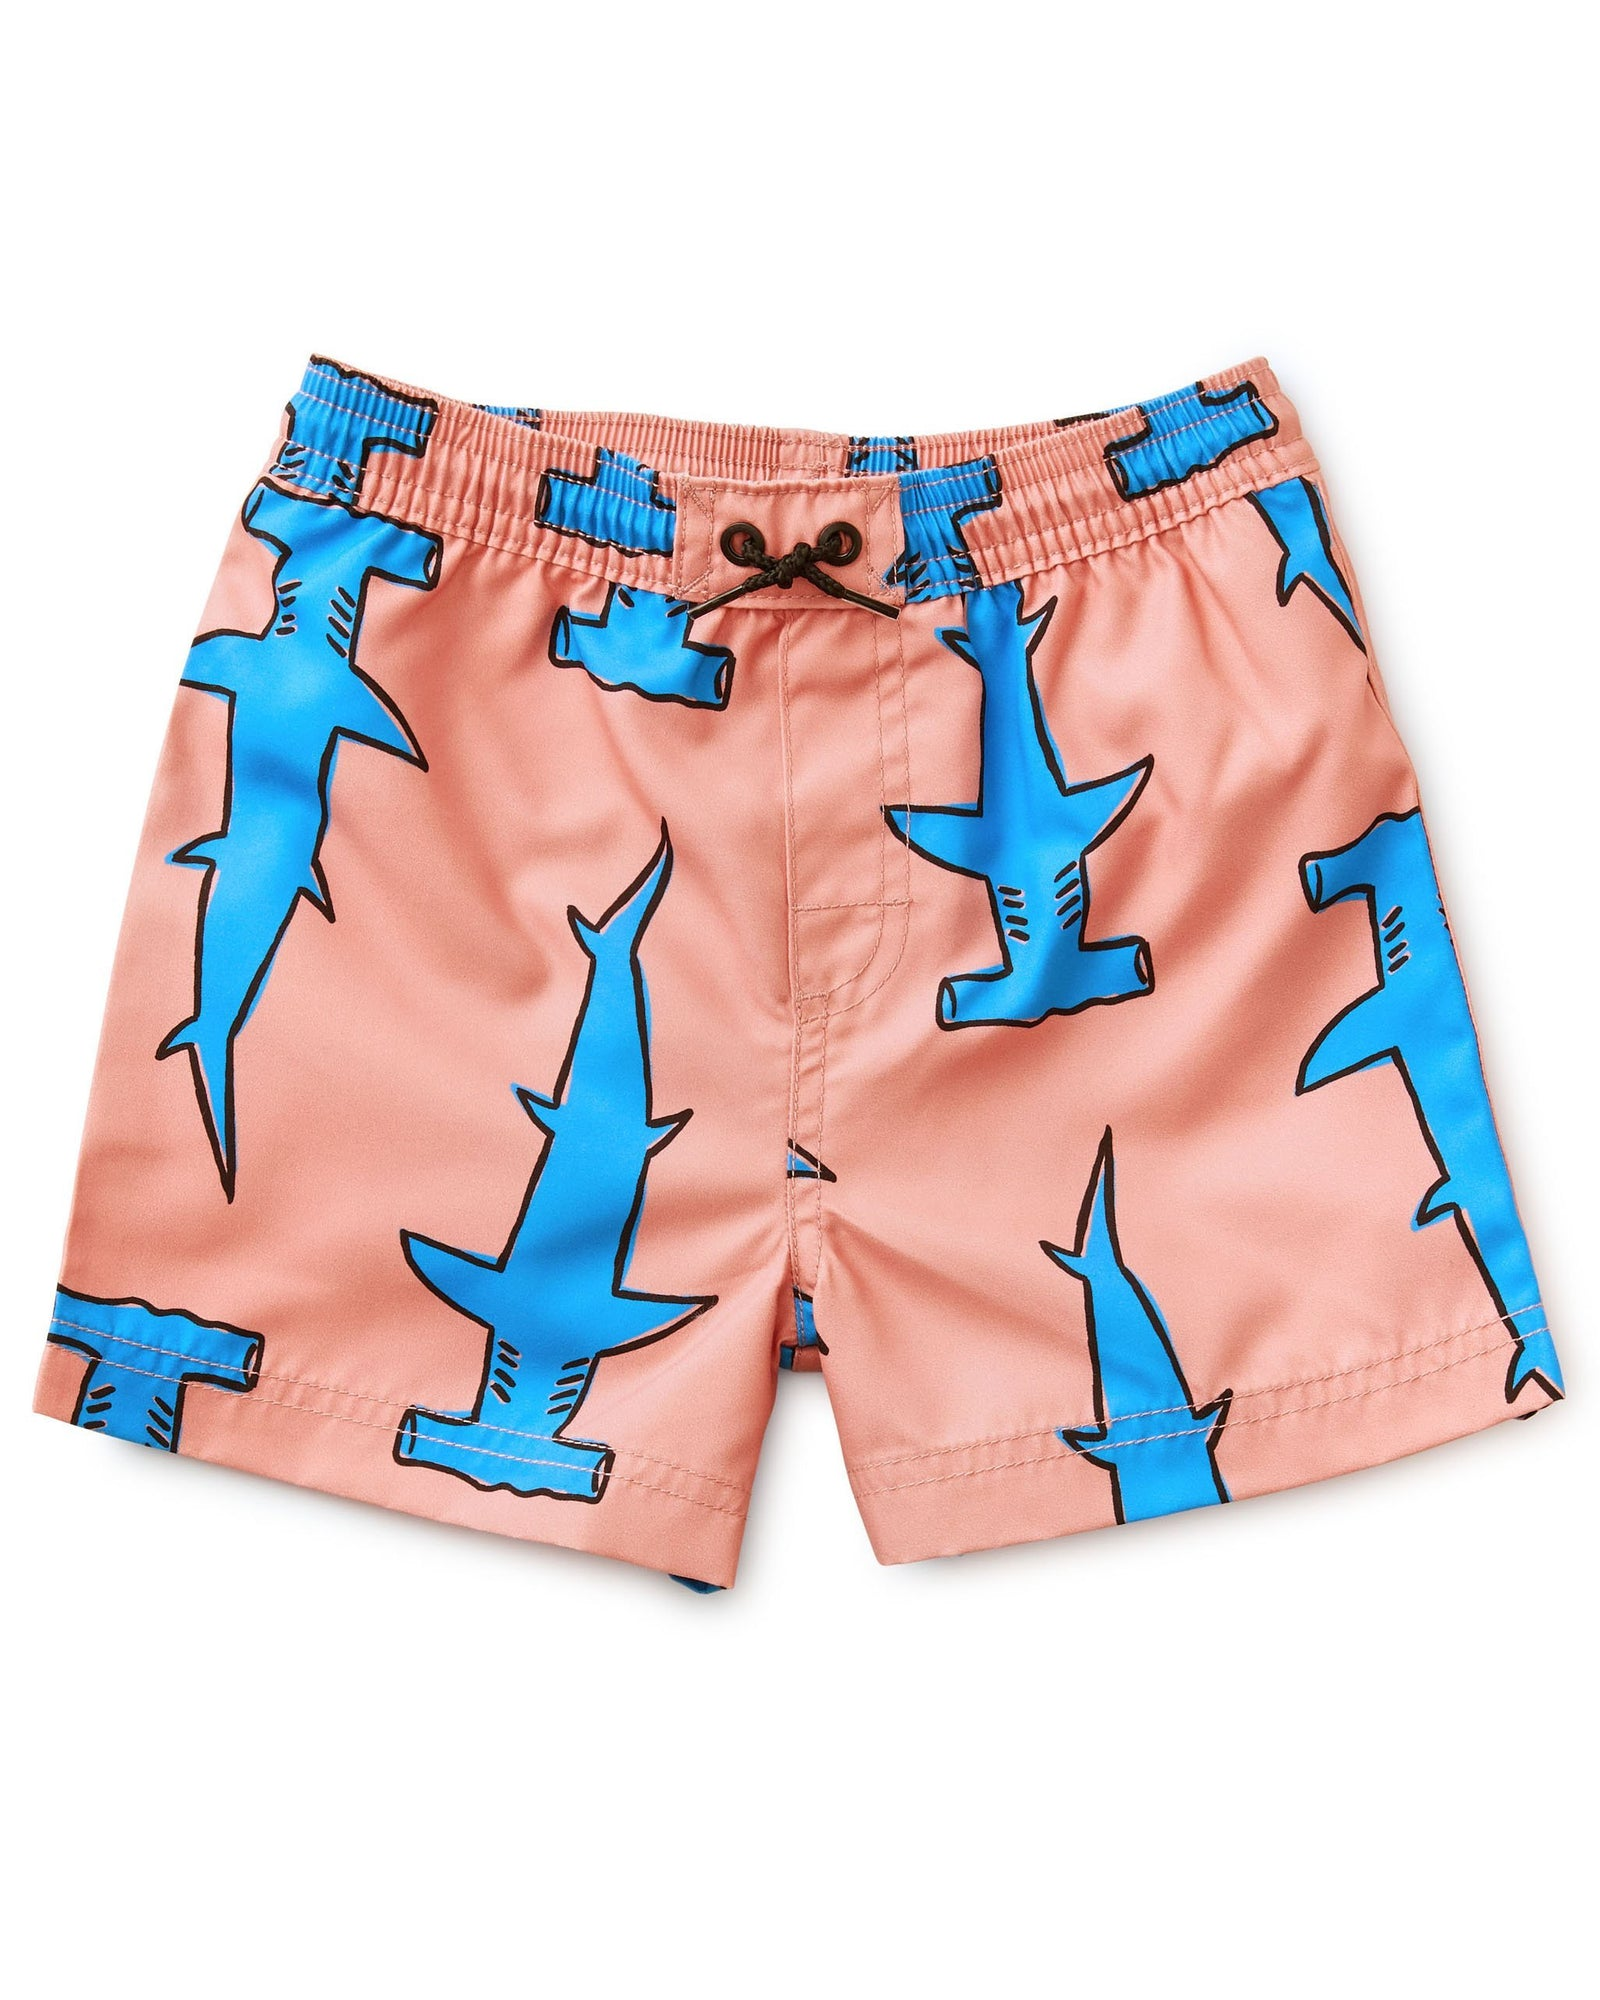 Little tea collection boy shortie swim trunk in hammerheads